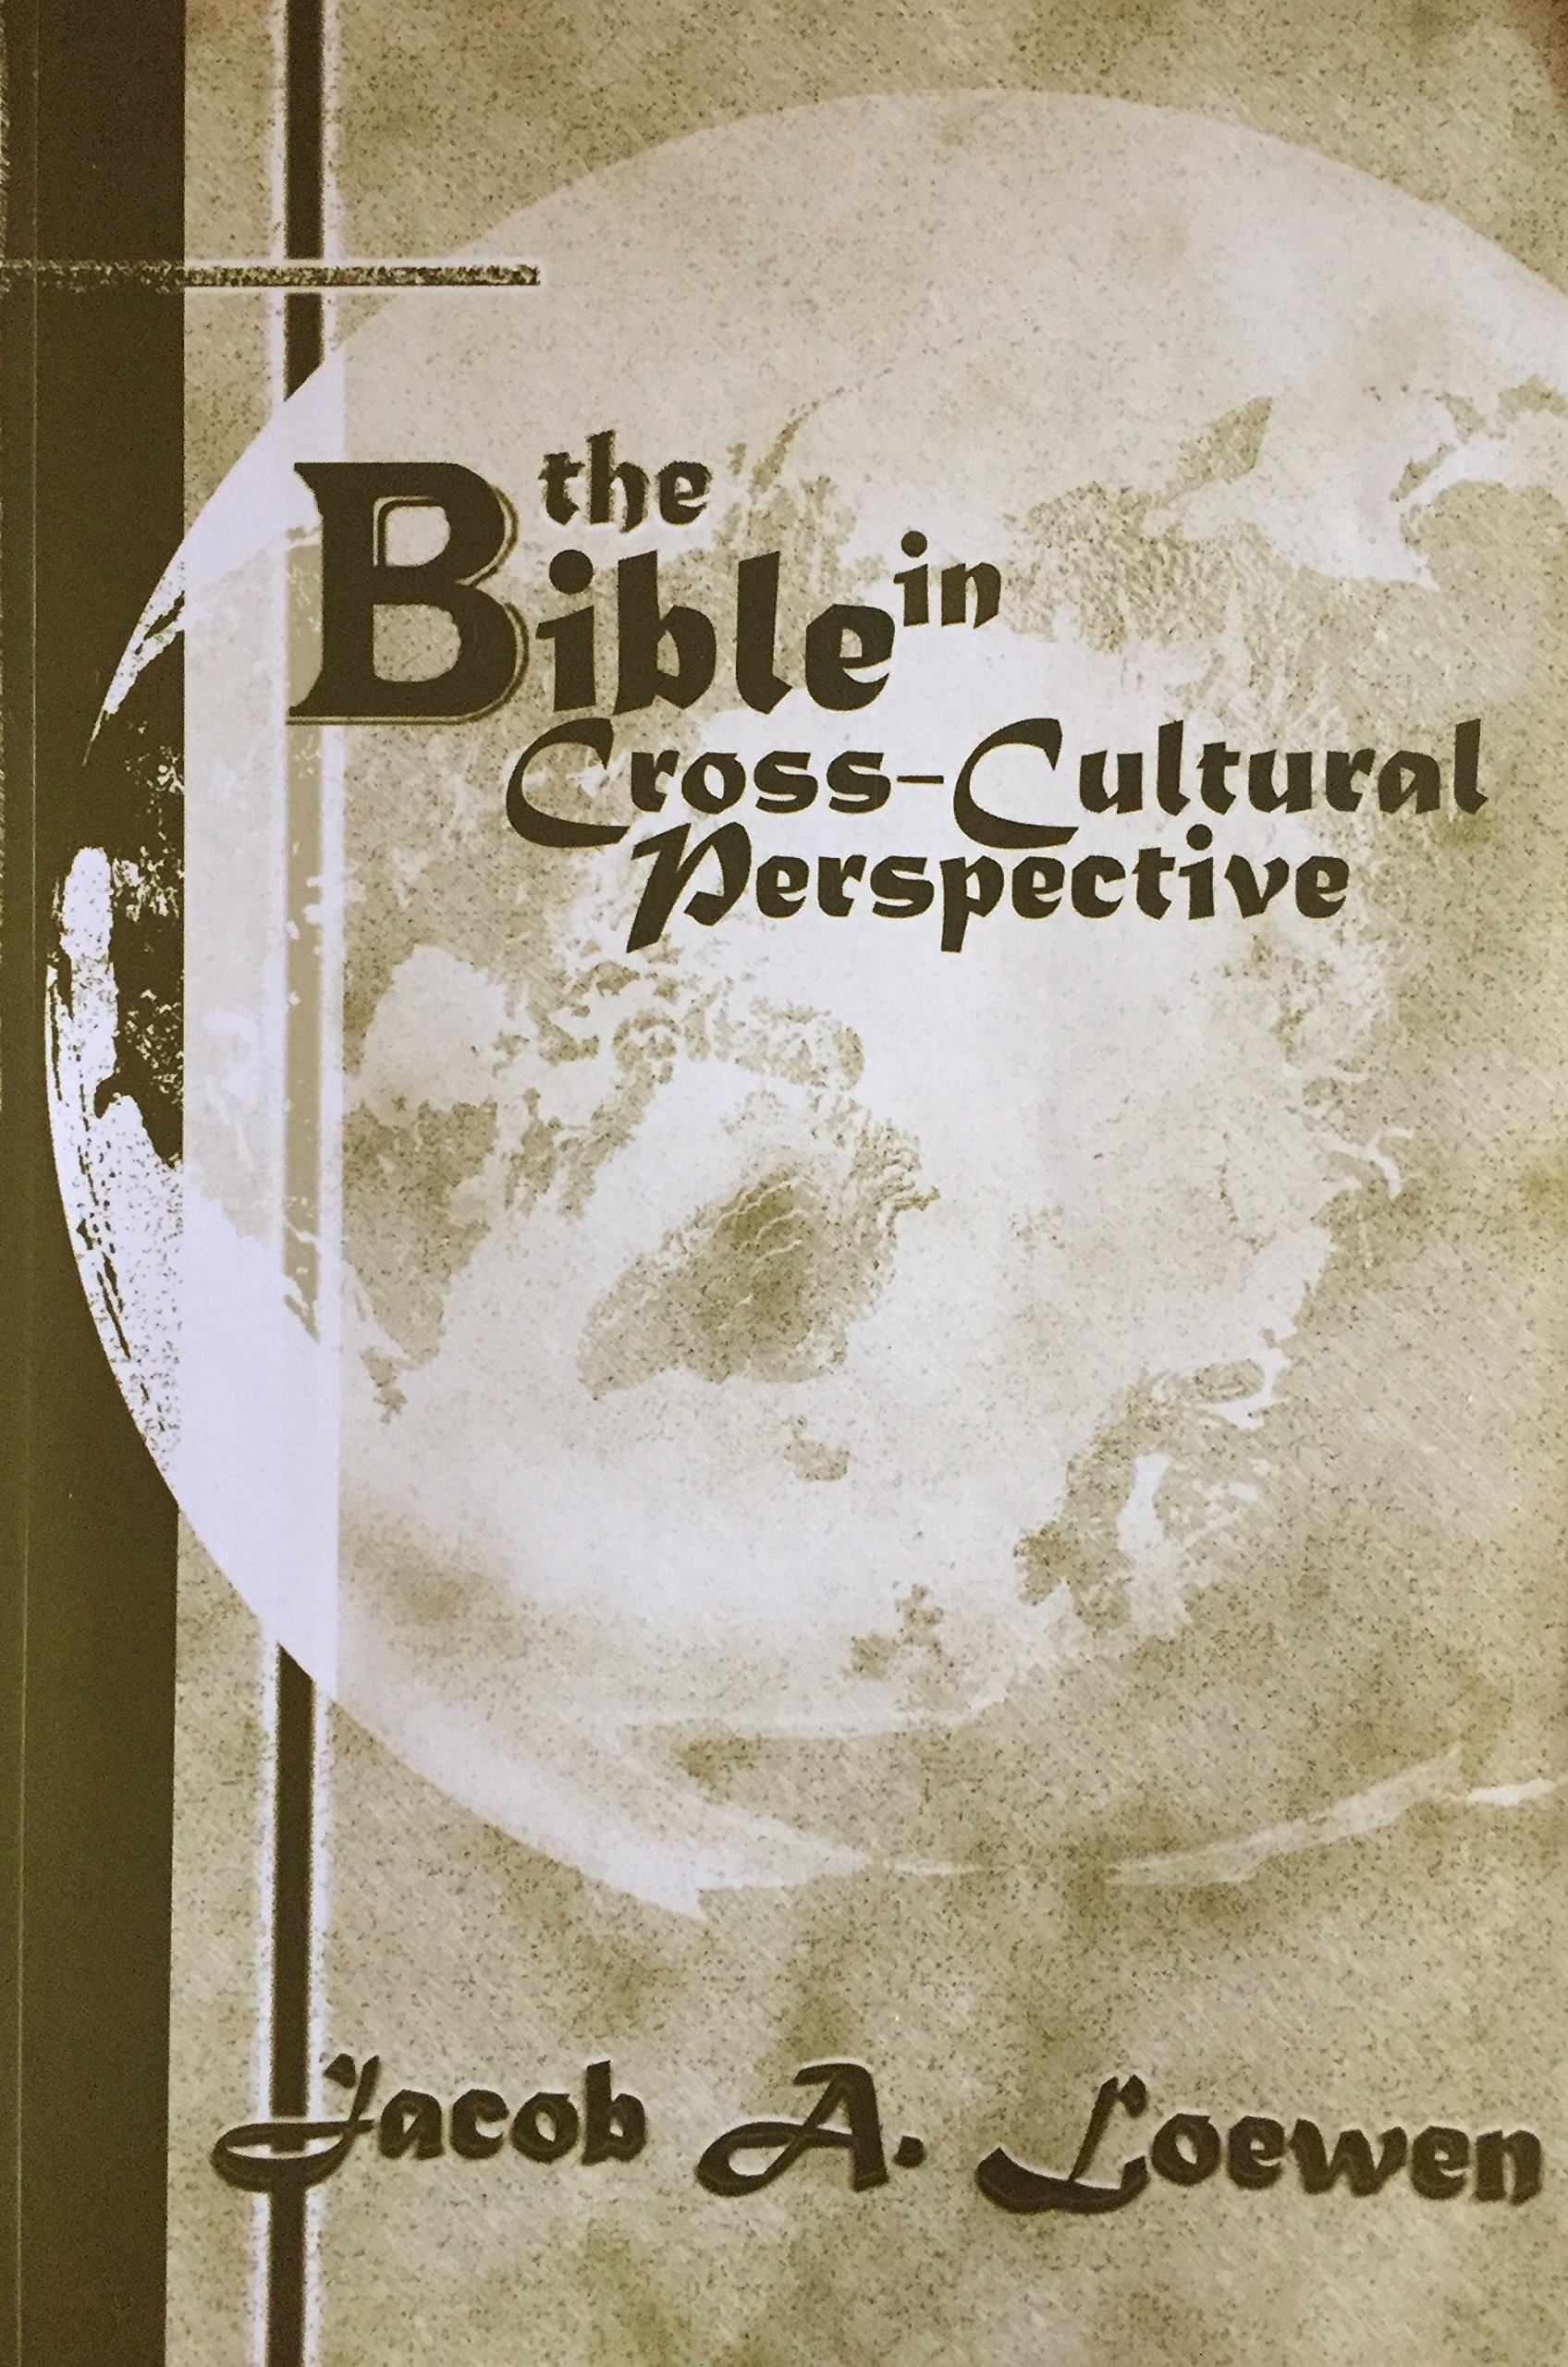 Bible in Cross-Cultural Perspective